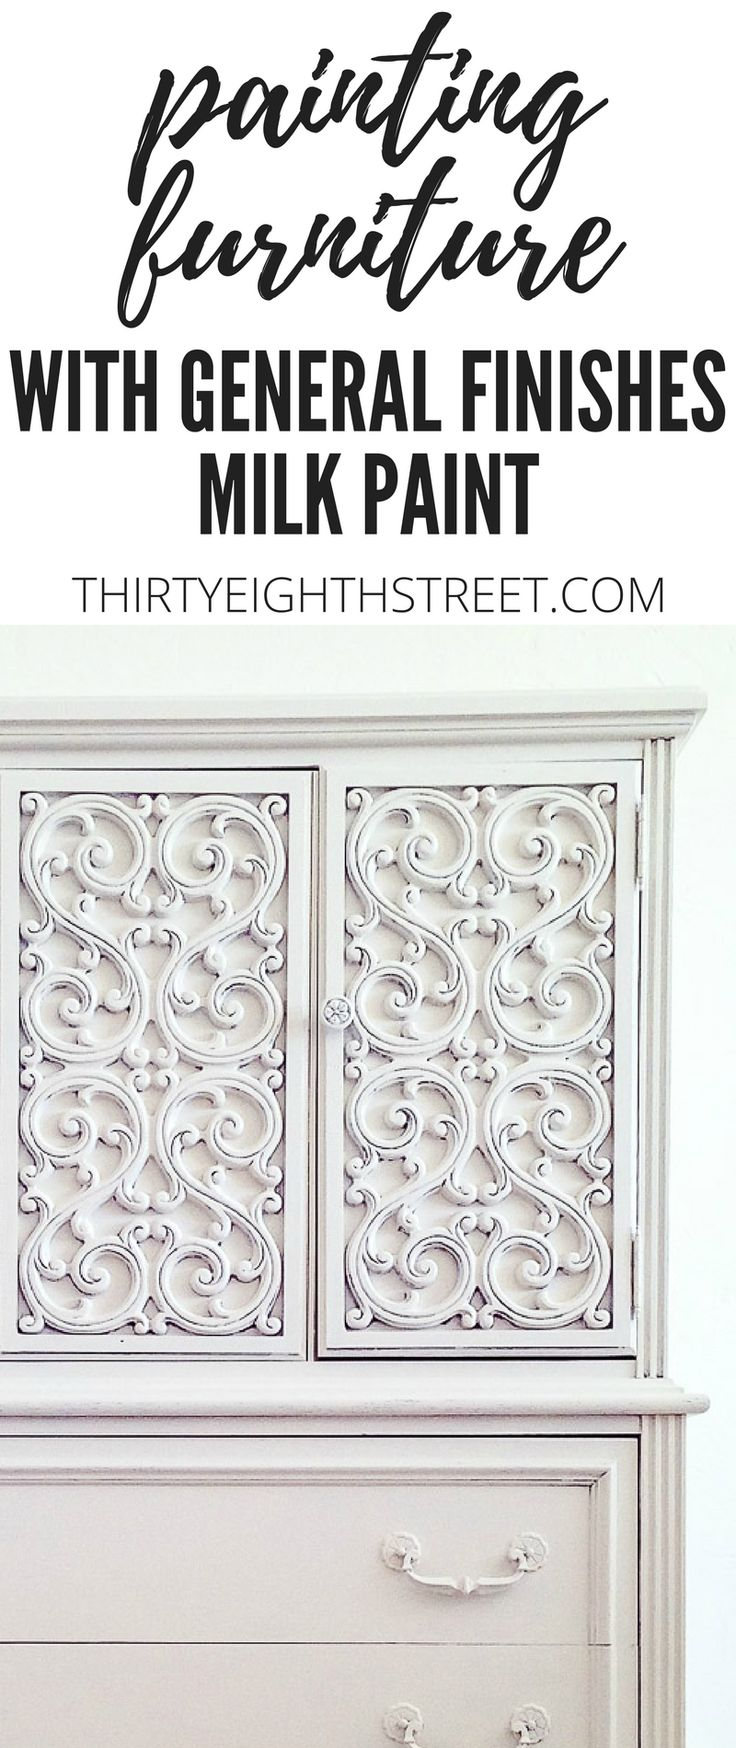 How To Paint Furniture With General Finishes Milk Paint! AMAZING Painting Furniture Tutorials and Before and After Furniture Makeover Ideas! | Thirty Eighth Street